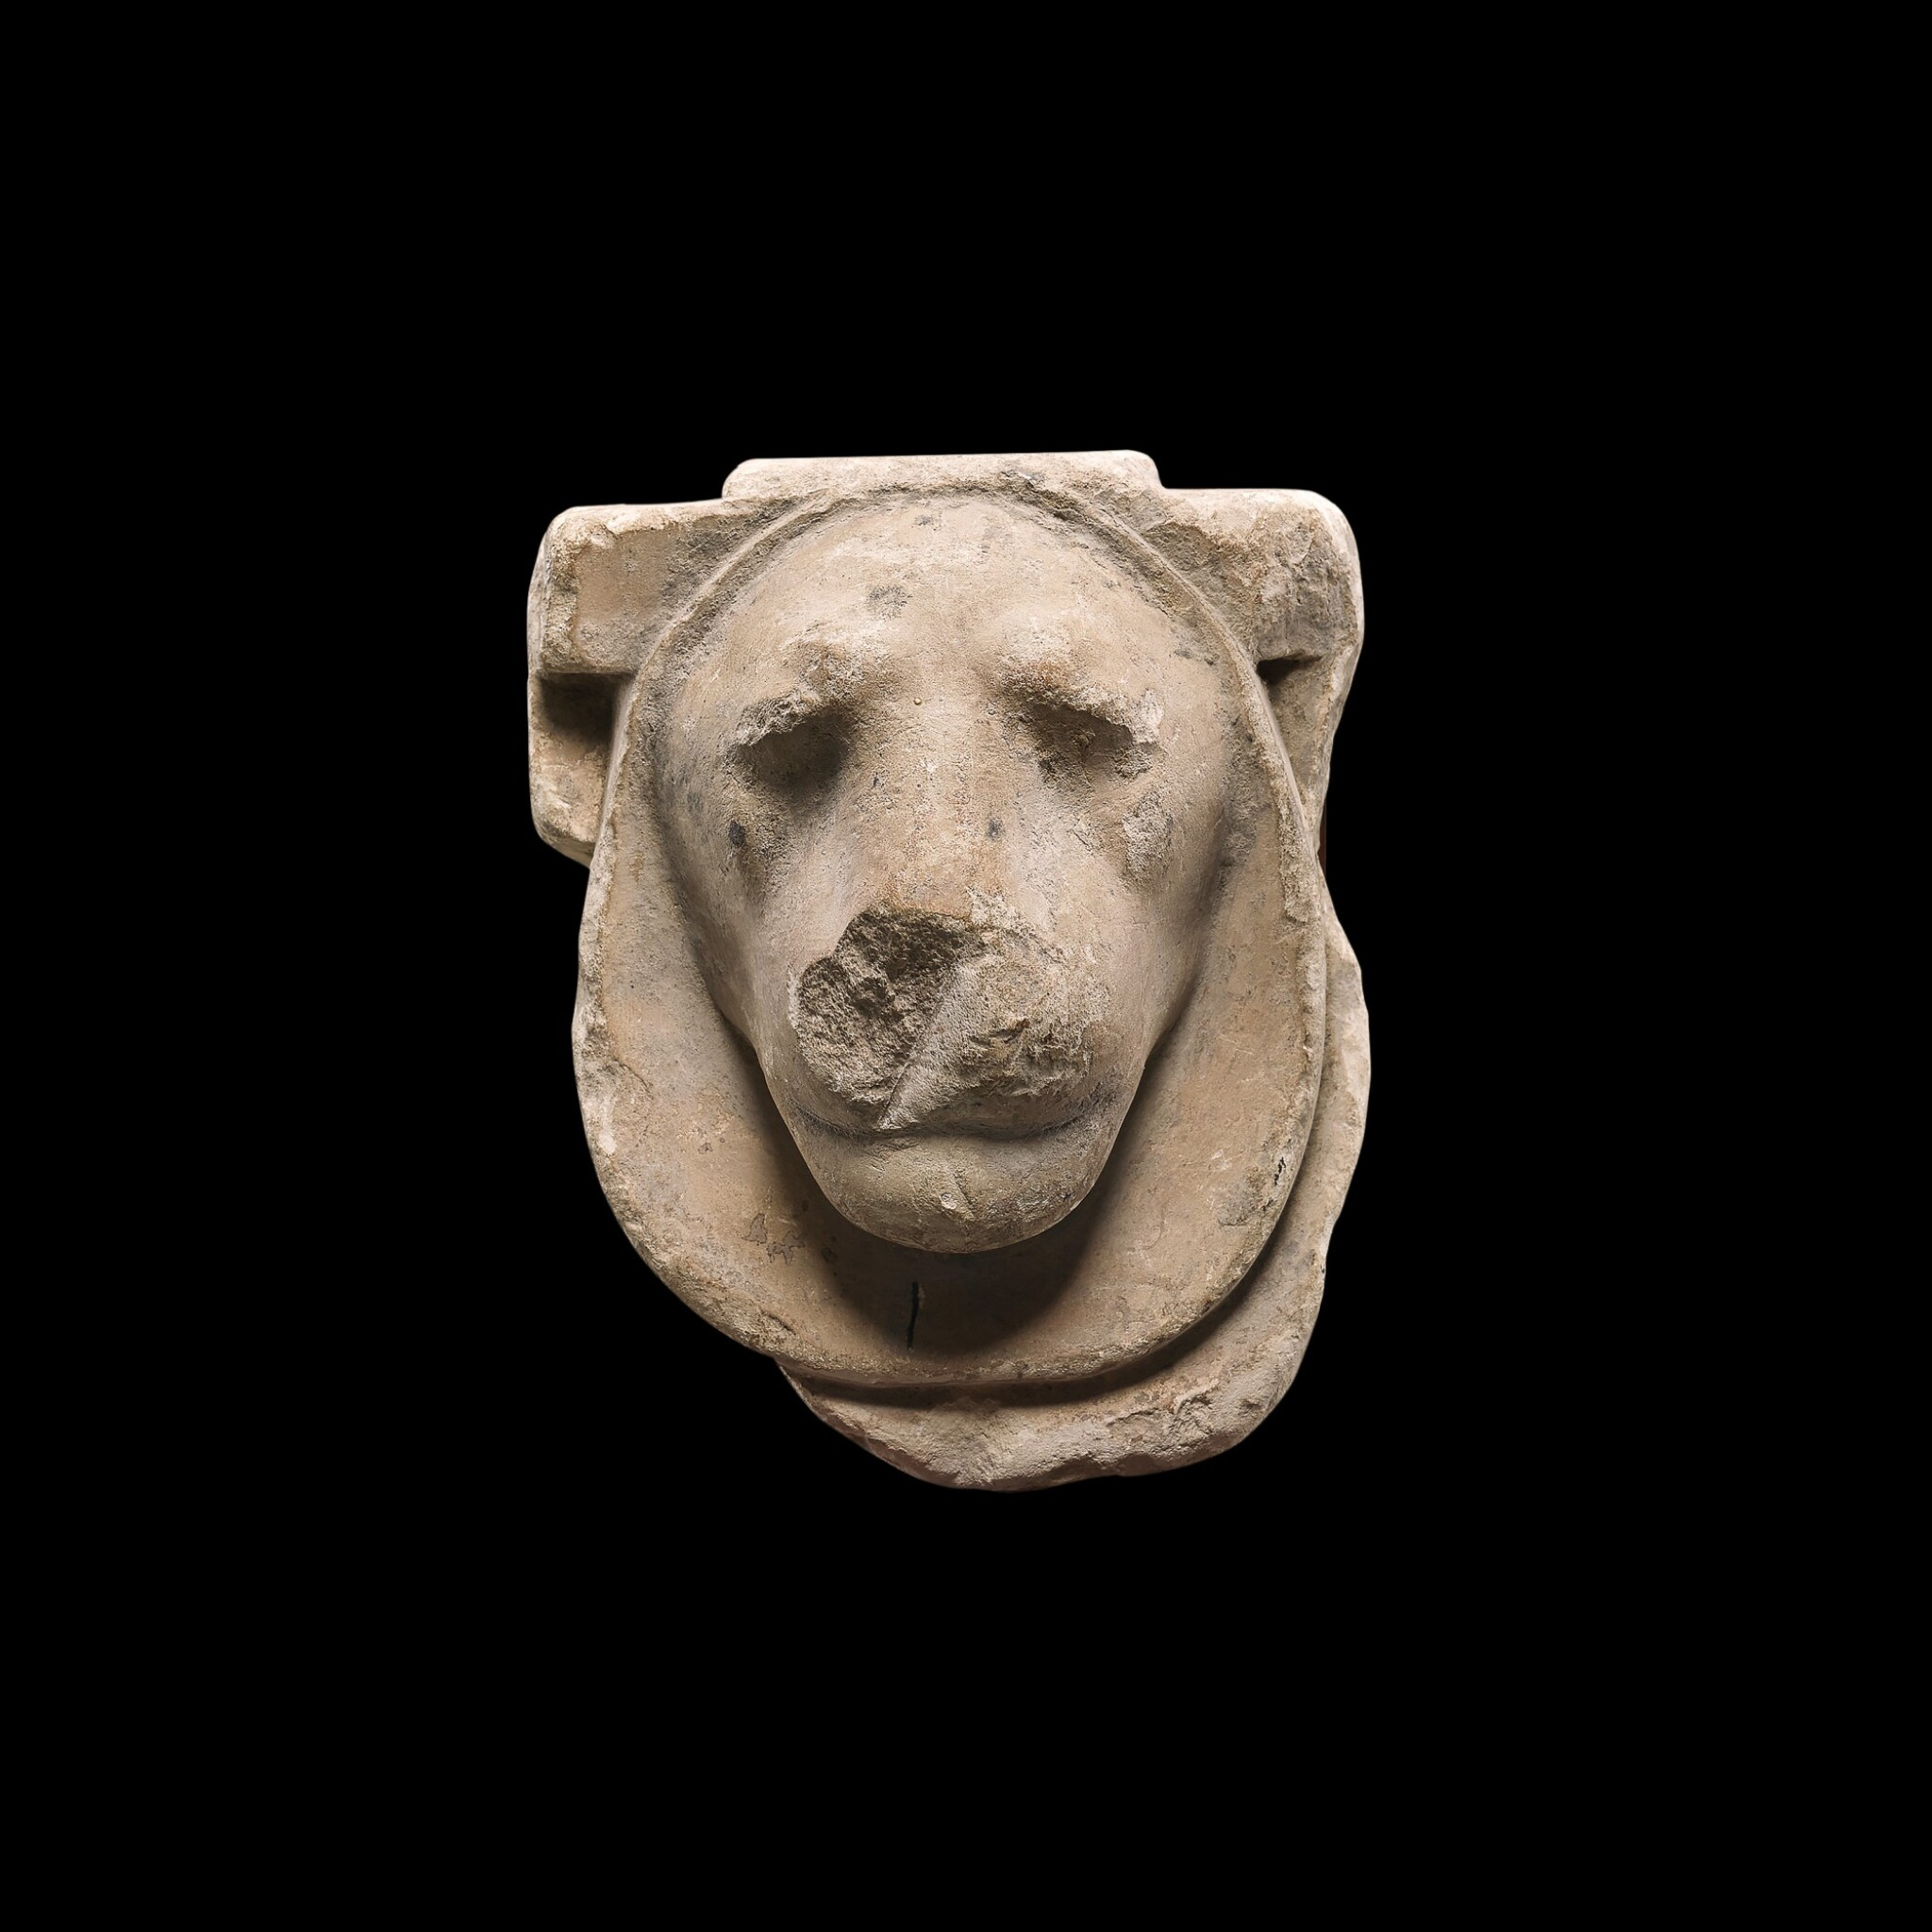 View 1 of Lot 49. An Egyptian Limestone Head of a Lion, Ptolemaic Period, 305-30 B.C..